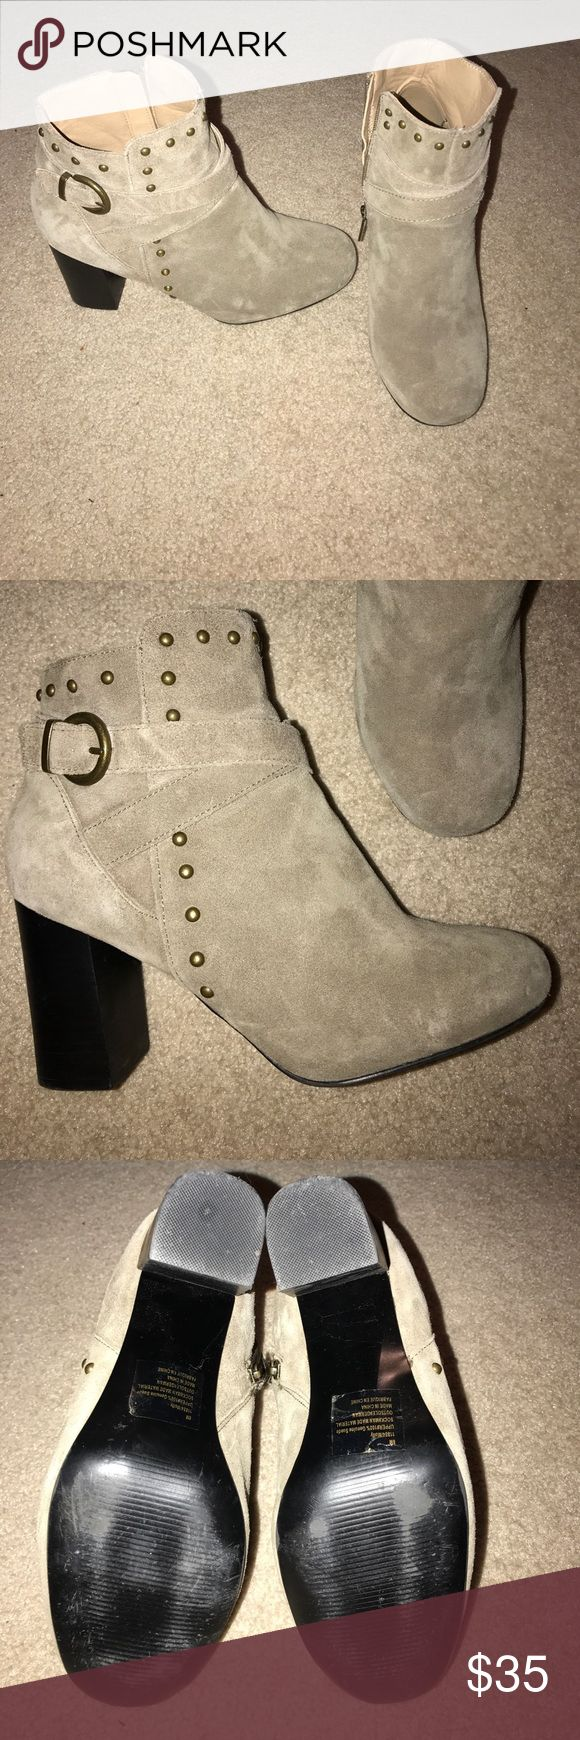 Suede ankle boots Women's suede tan ankle boots only worn a couple times. There are some hardly noticeable lighter marks around the toe area but they came from the store that way. Maurices Shoes Ankle Boots & Booties